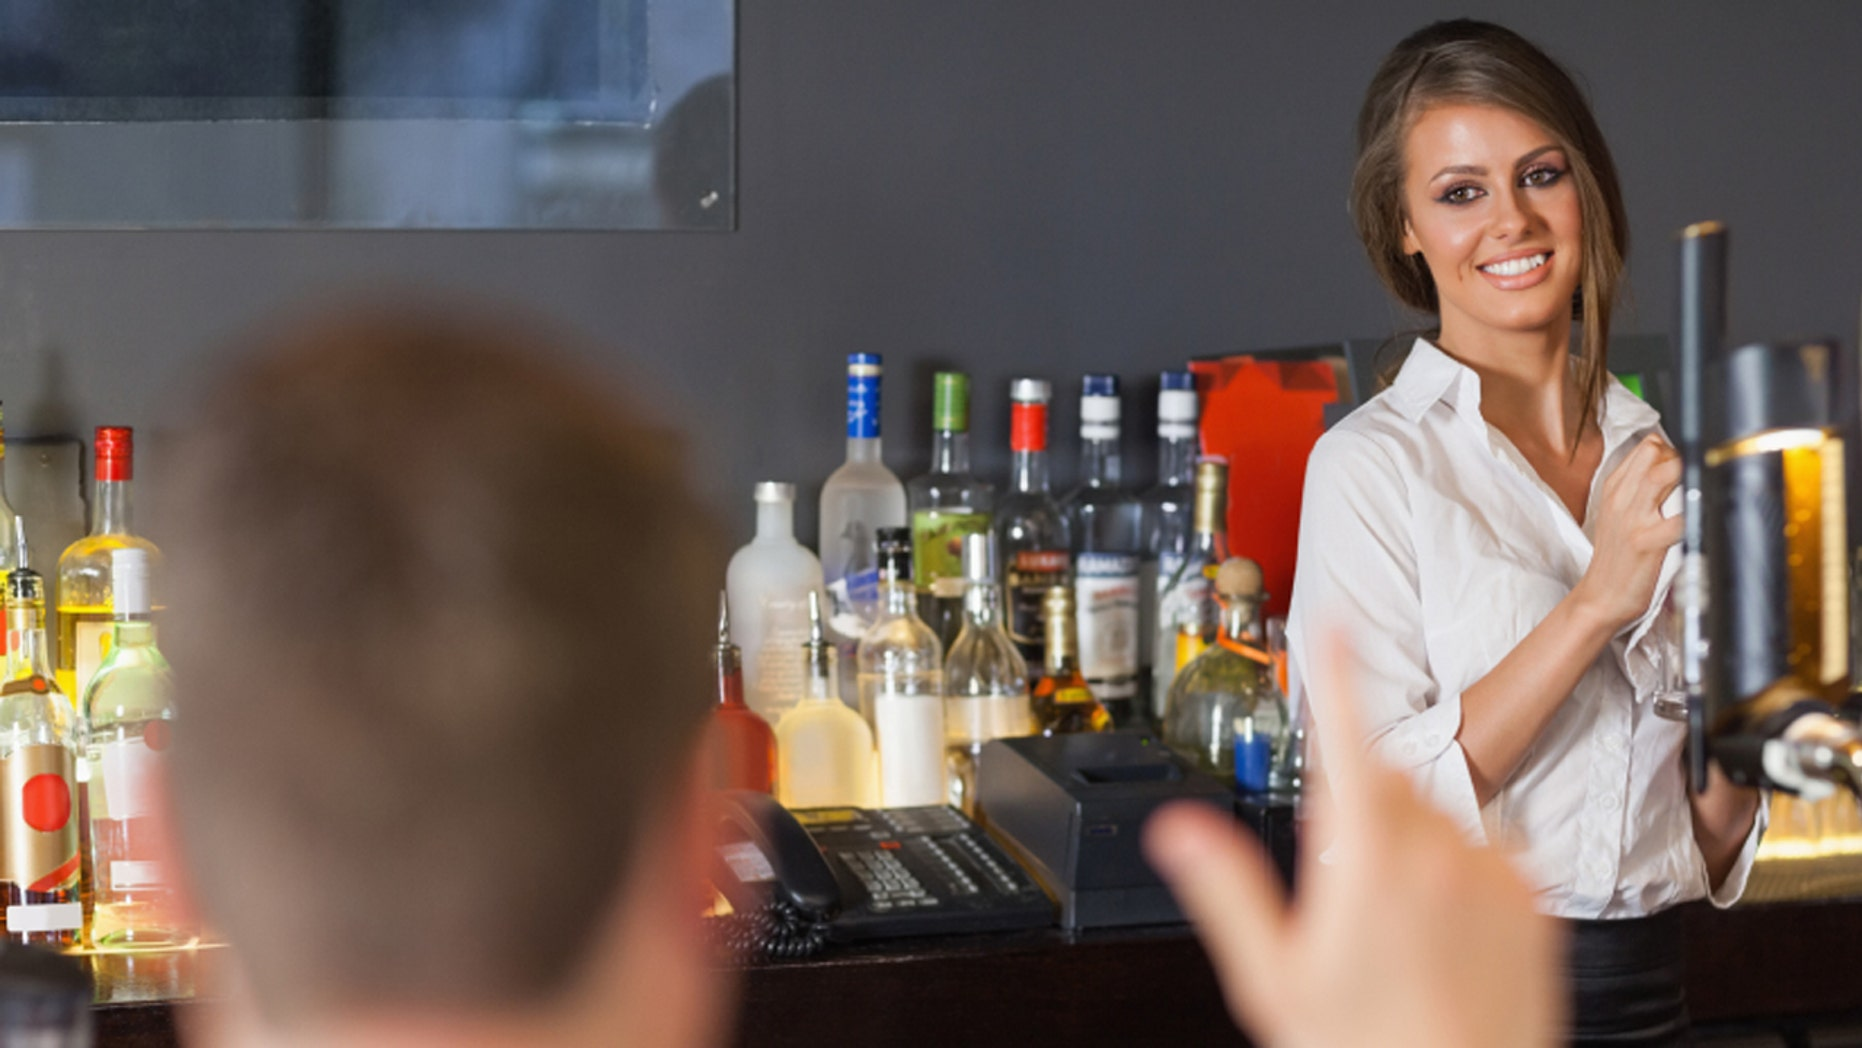 Don't bug your waitress with a snarky pick-up line.